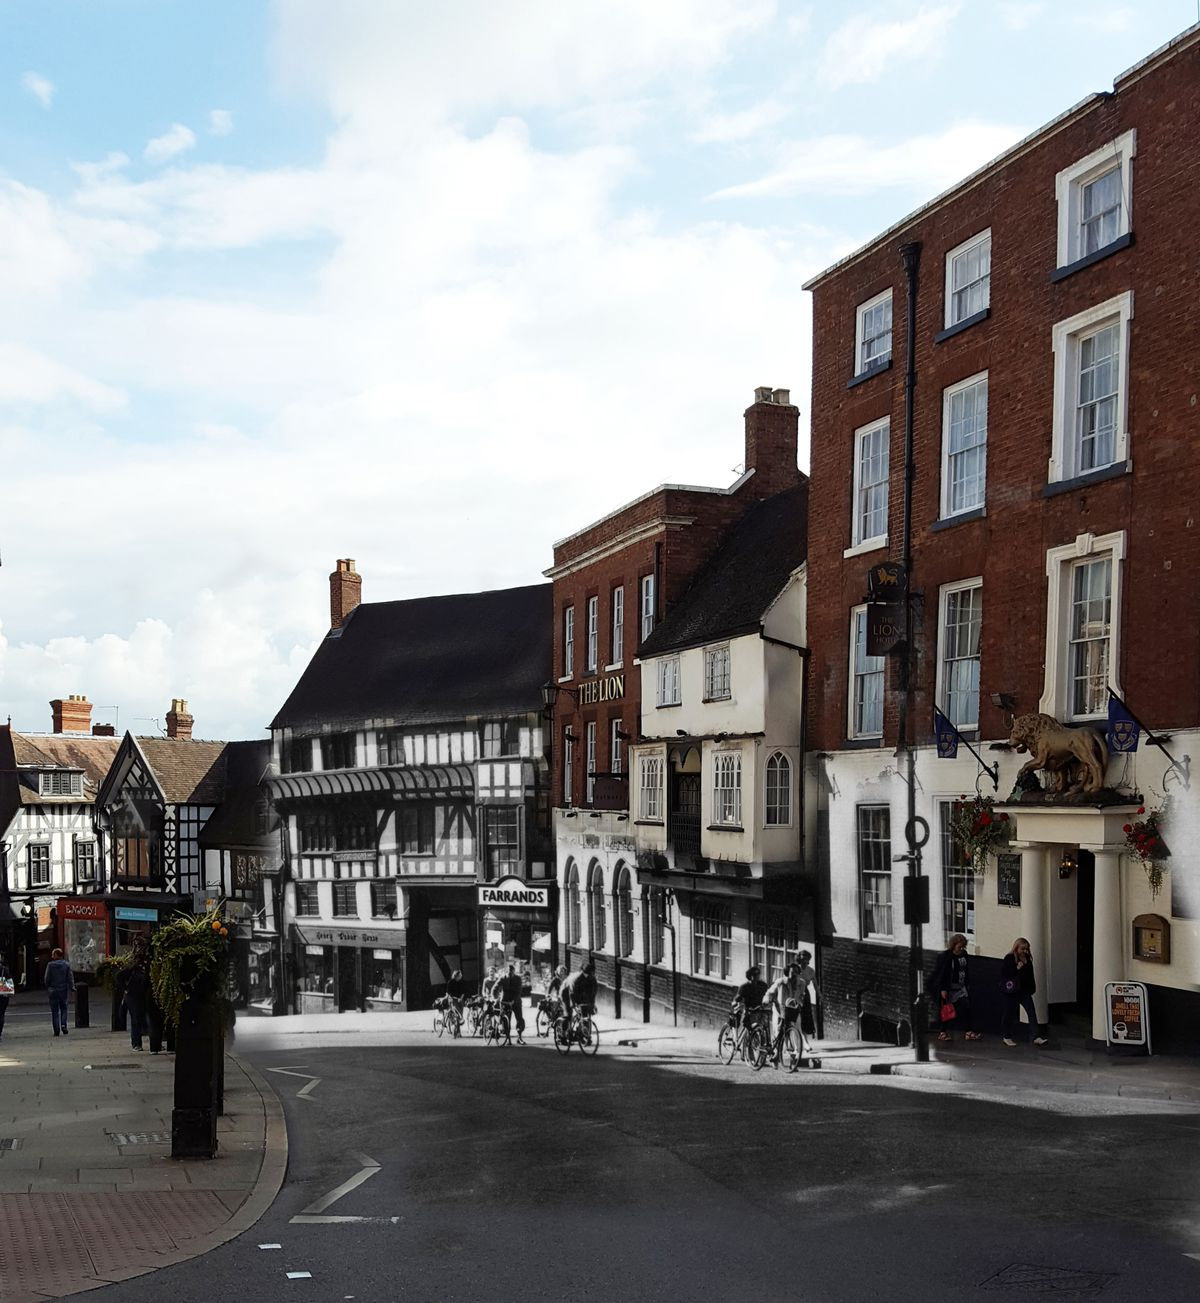 Shrewsbury folk of 100 years ago would recognise this street in an instant - we're at the top of Wyle Cop, with the Lion Hotel on the right